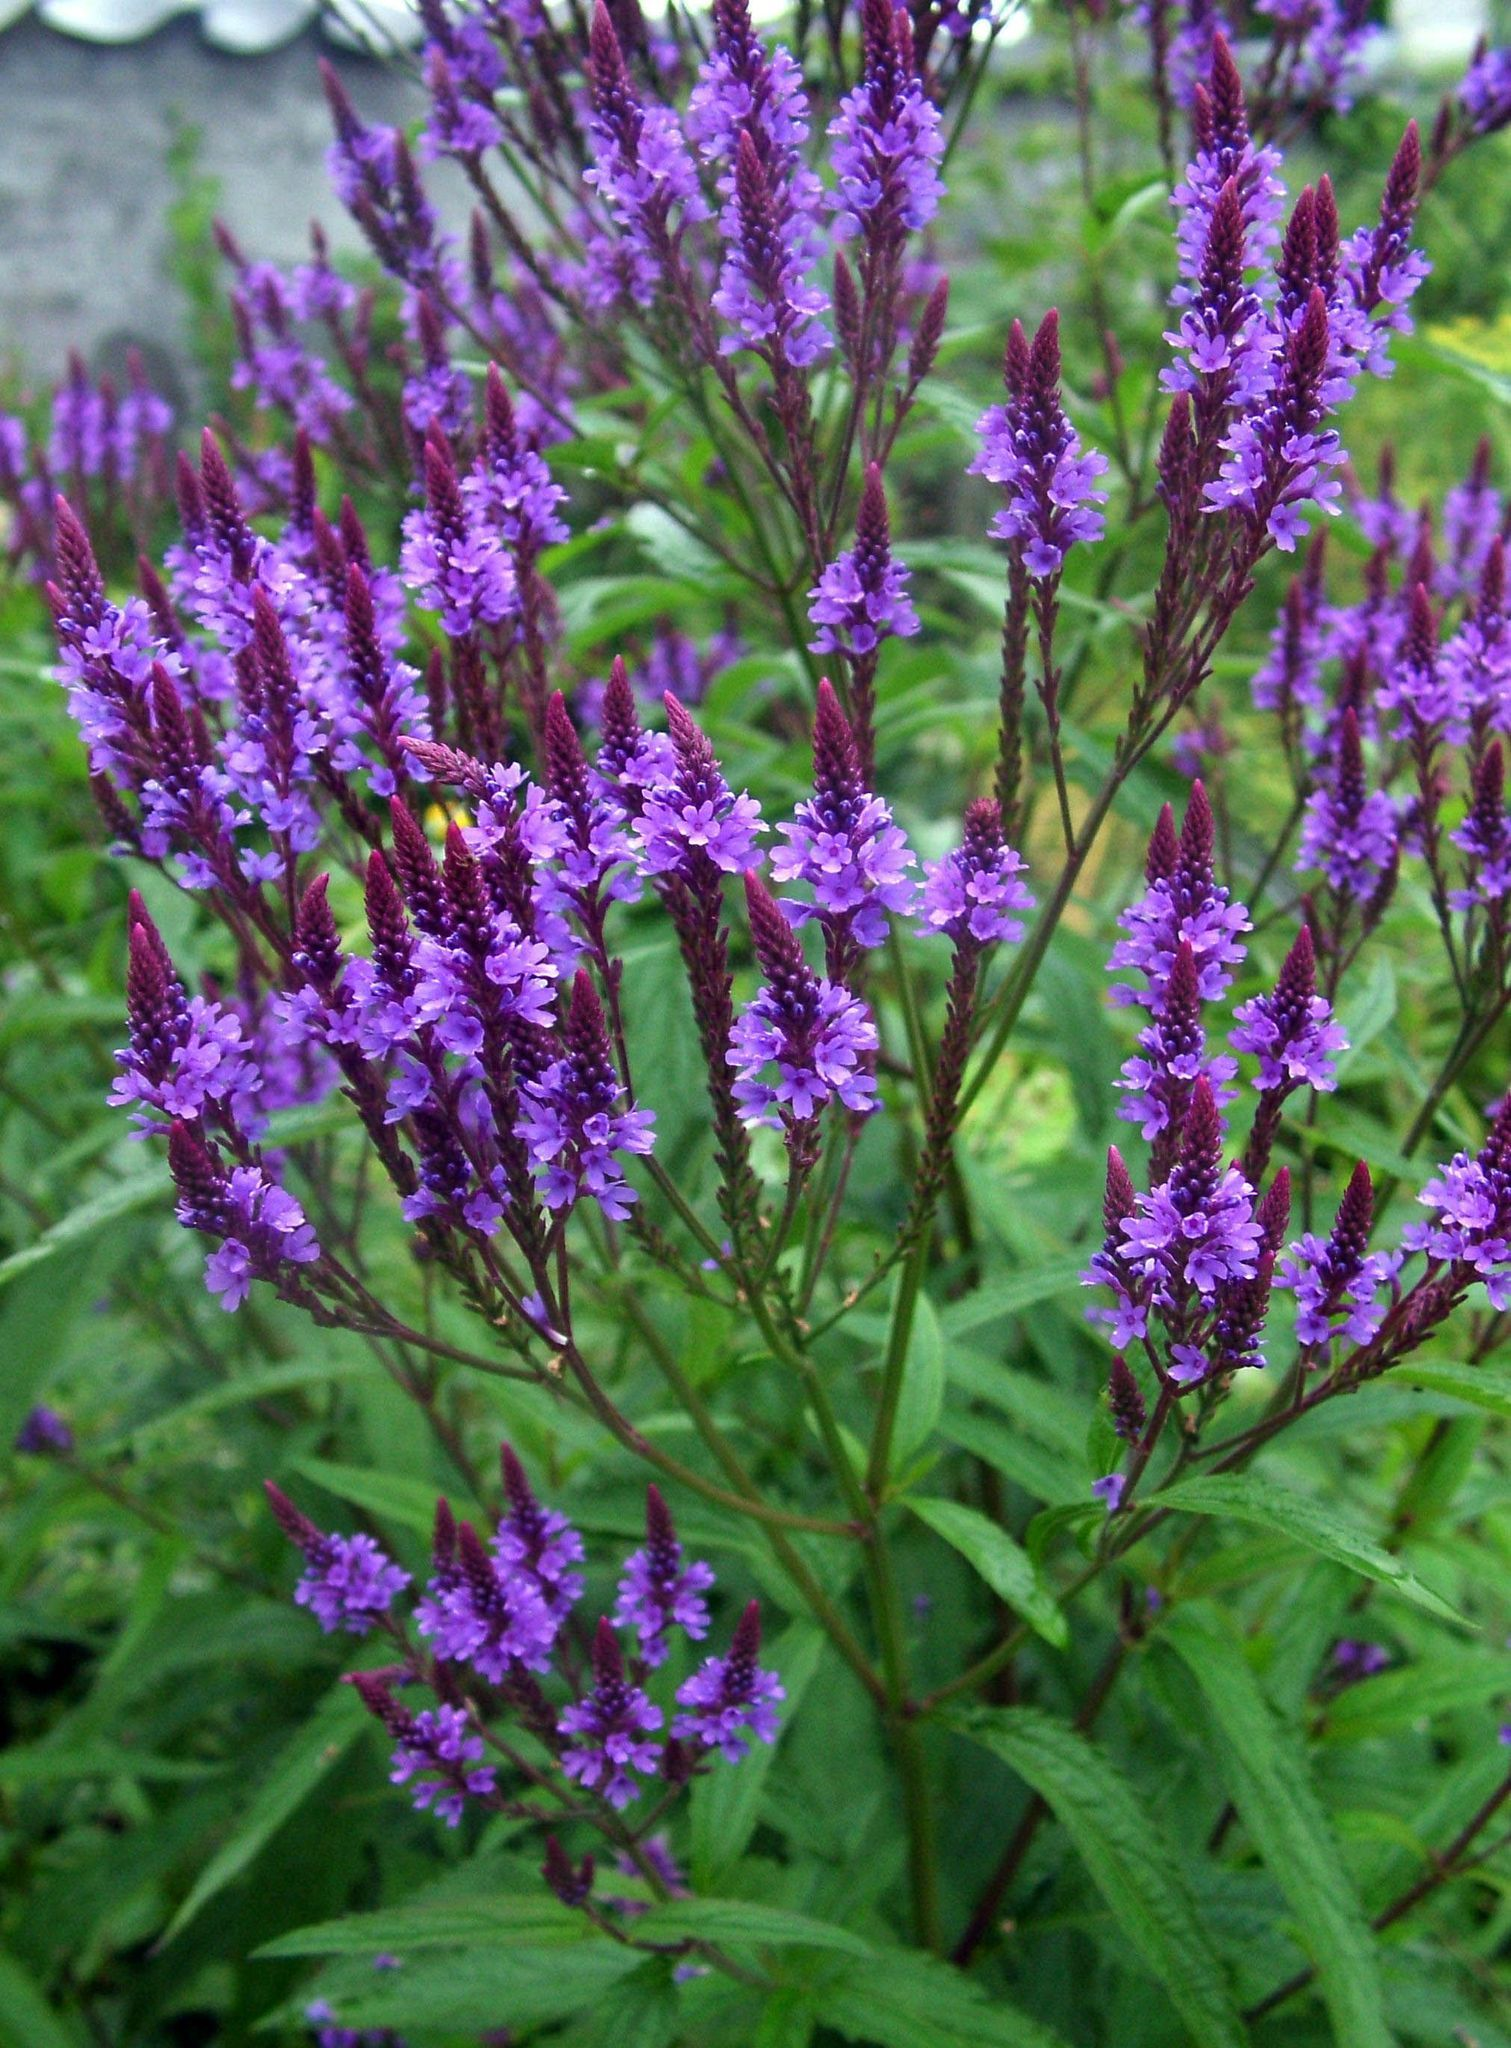 Verbena hastata - Blue Vervain - 'Enchantment' in the